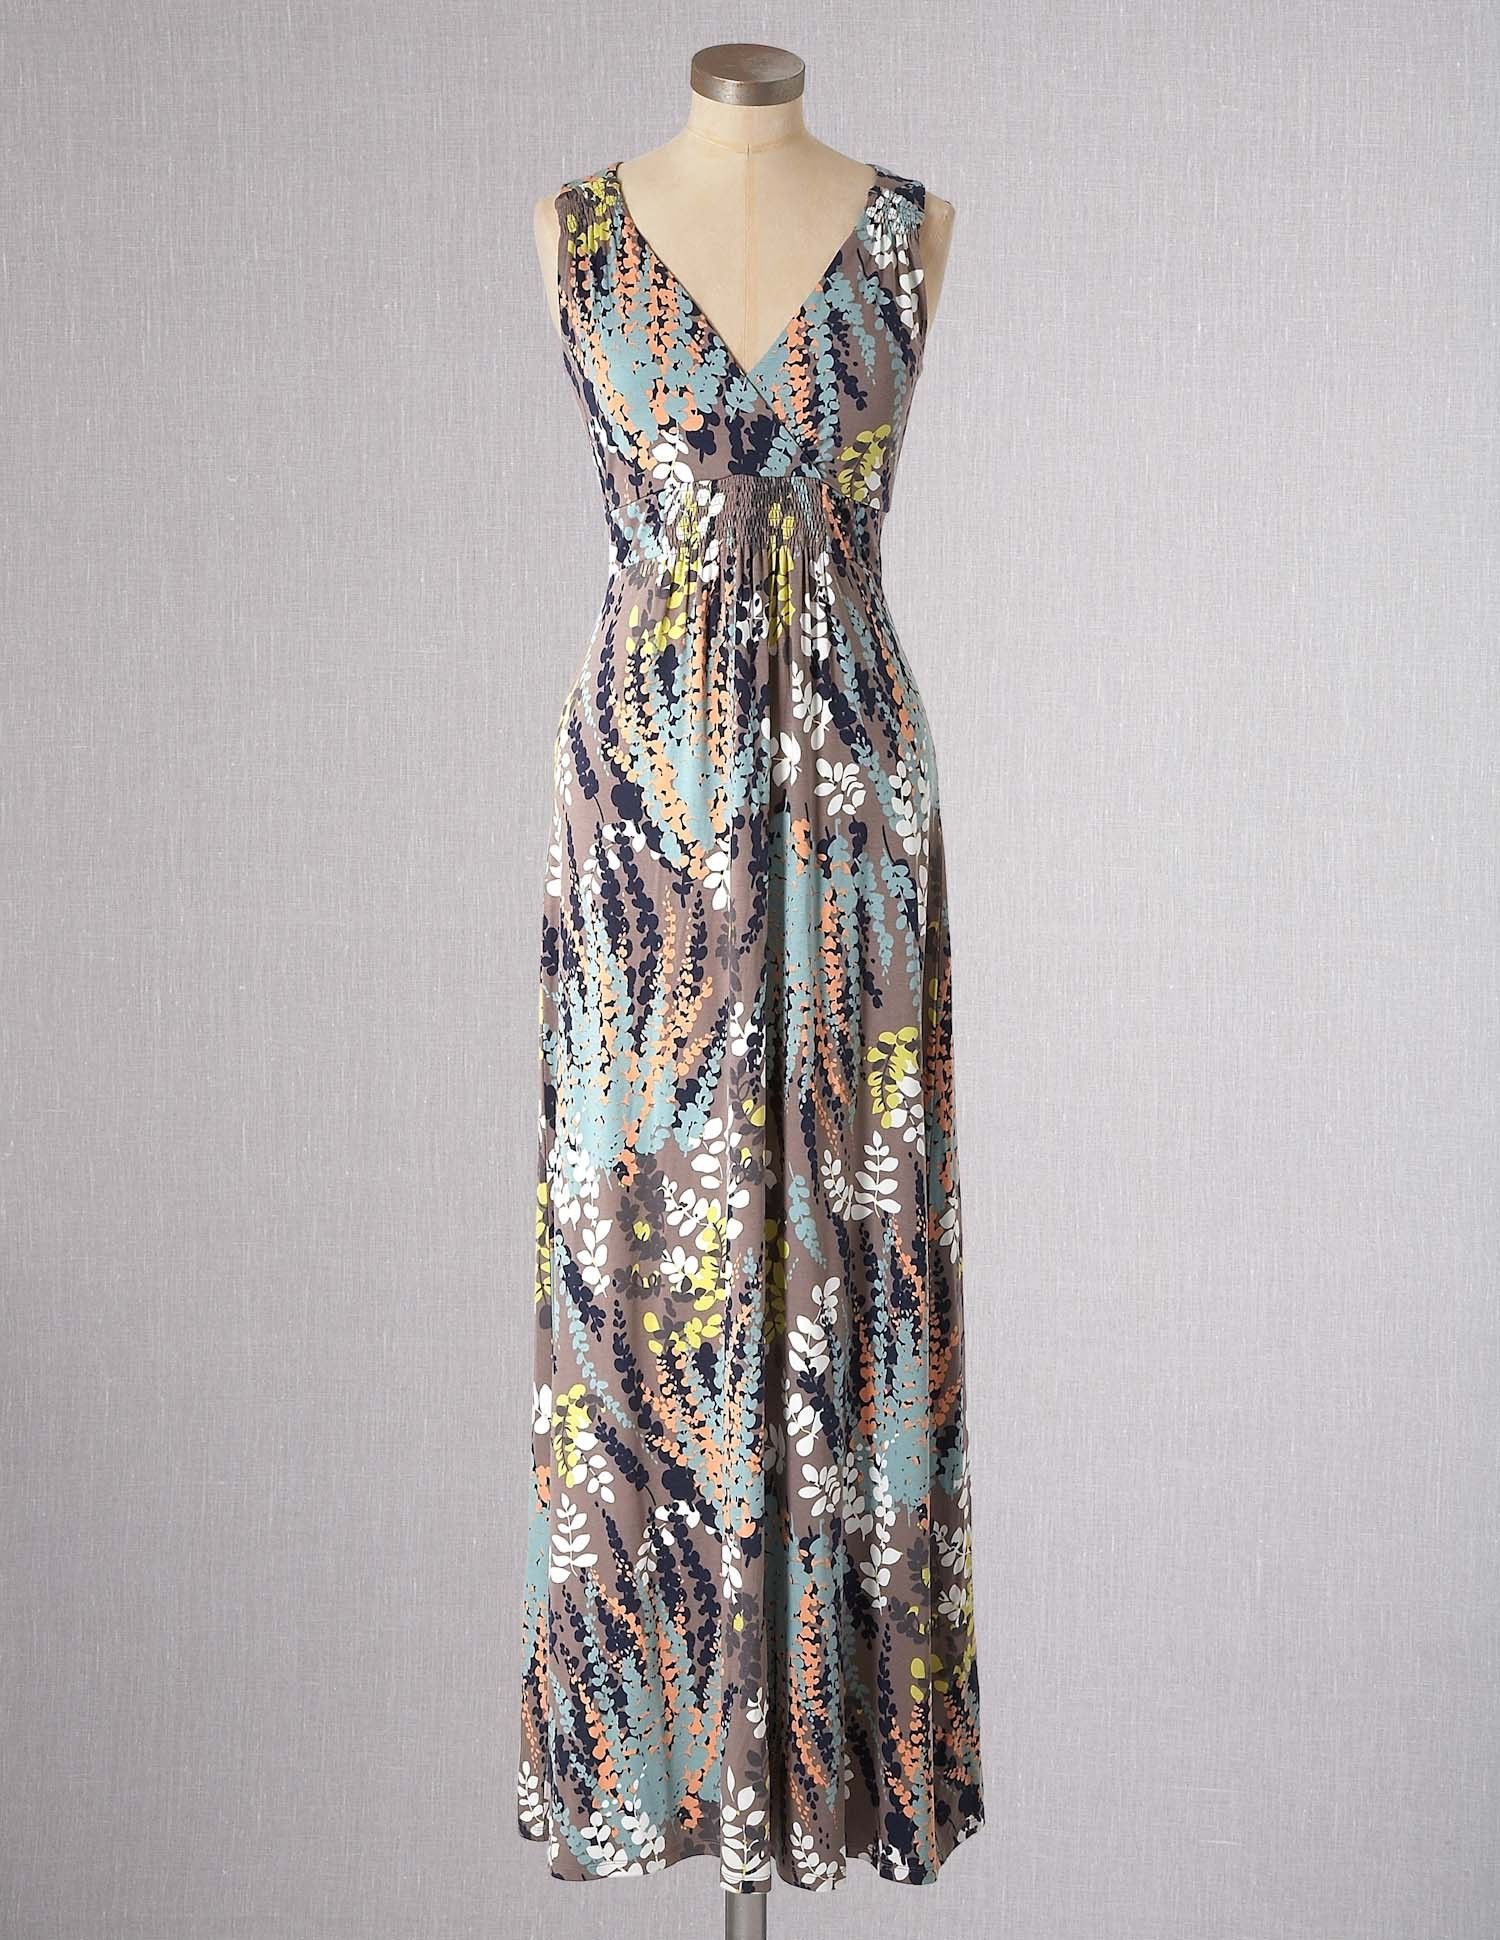 Boden jersey maxi dress my style u me likey pinterest